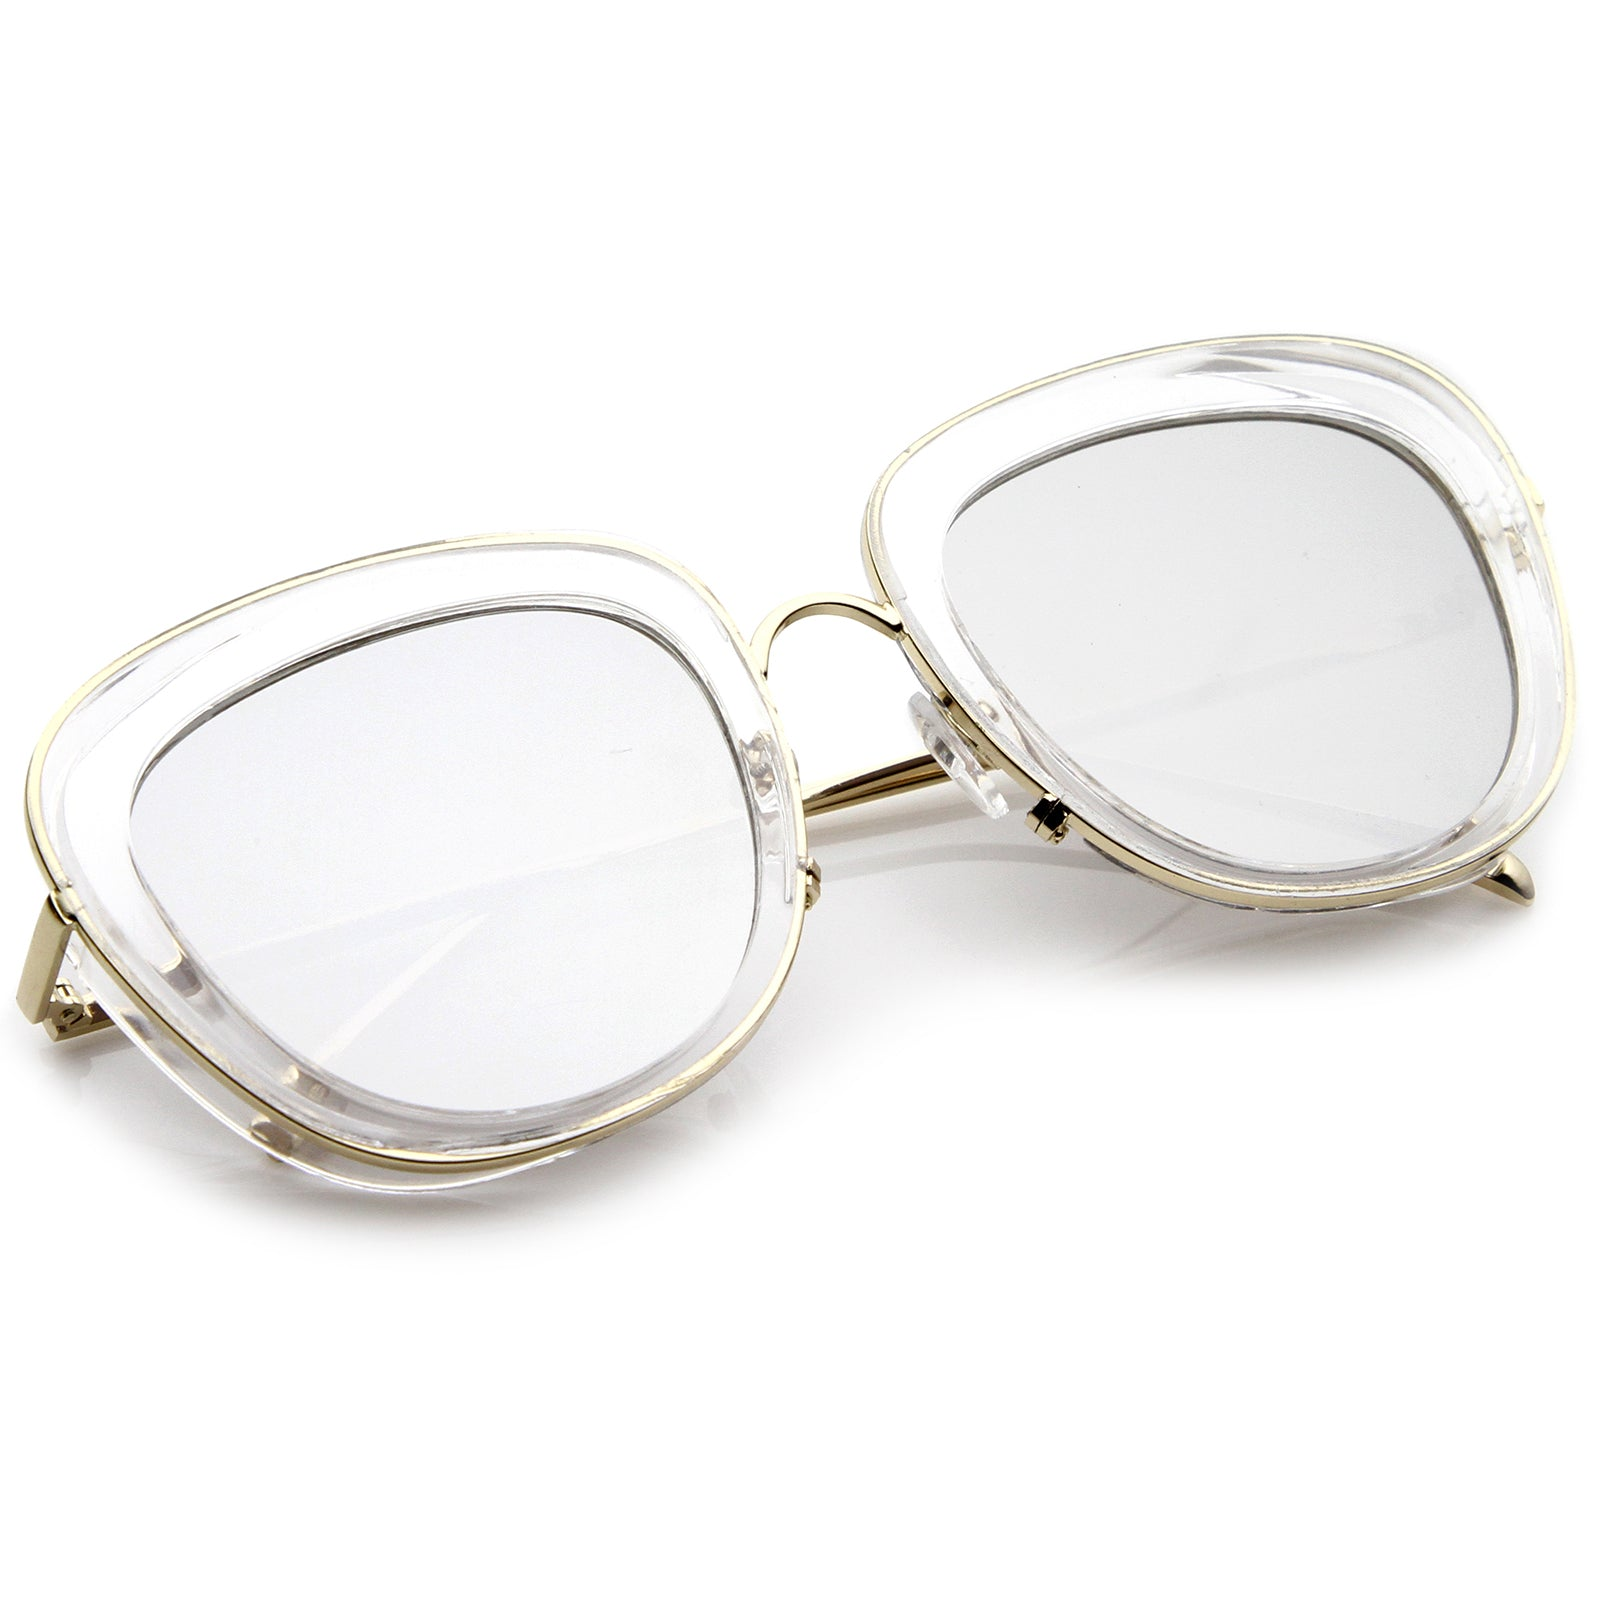 Clear-Gold / Silver Mirror